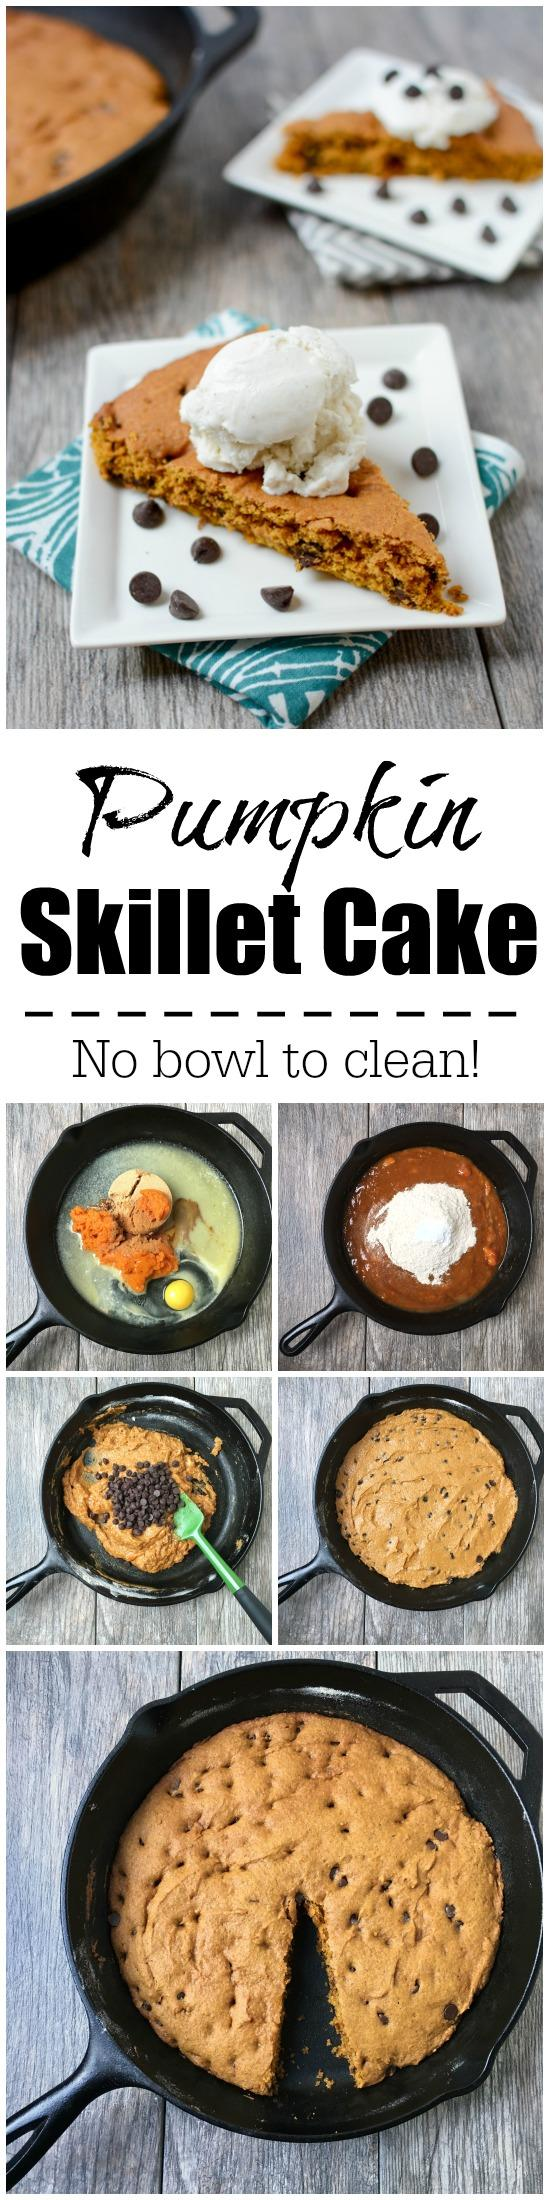 No mixing bowl required for this Pumpkin Skillet Cake! You can make the whole thing right in the skillet. Light, fluffy and easy to make, it's the perfect fall dessert recipe!